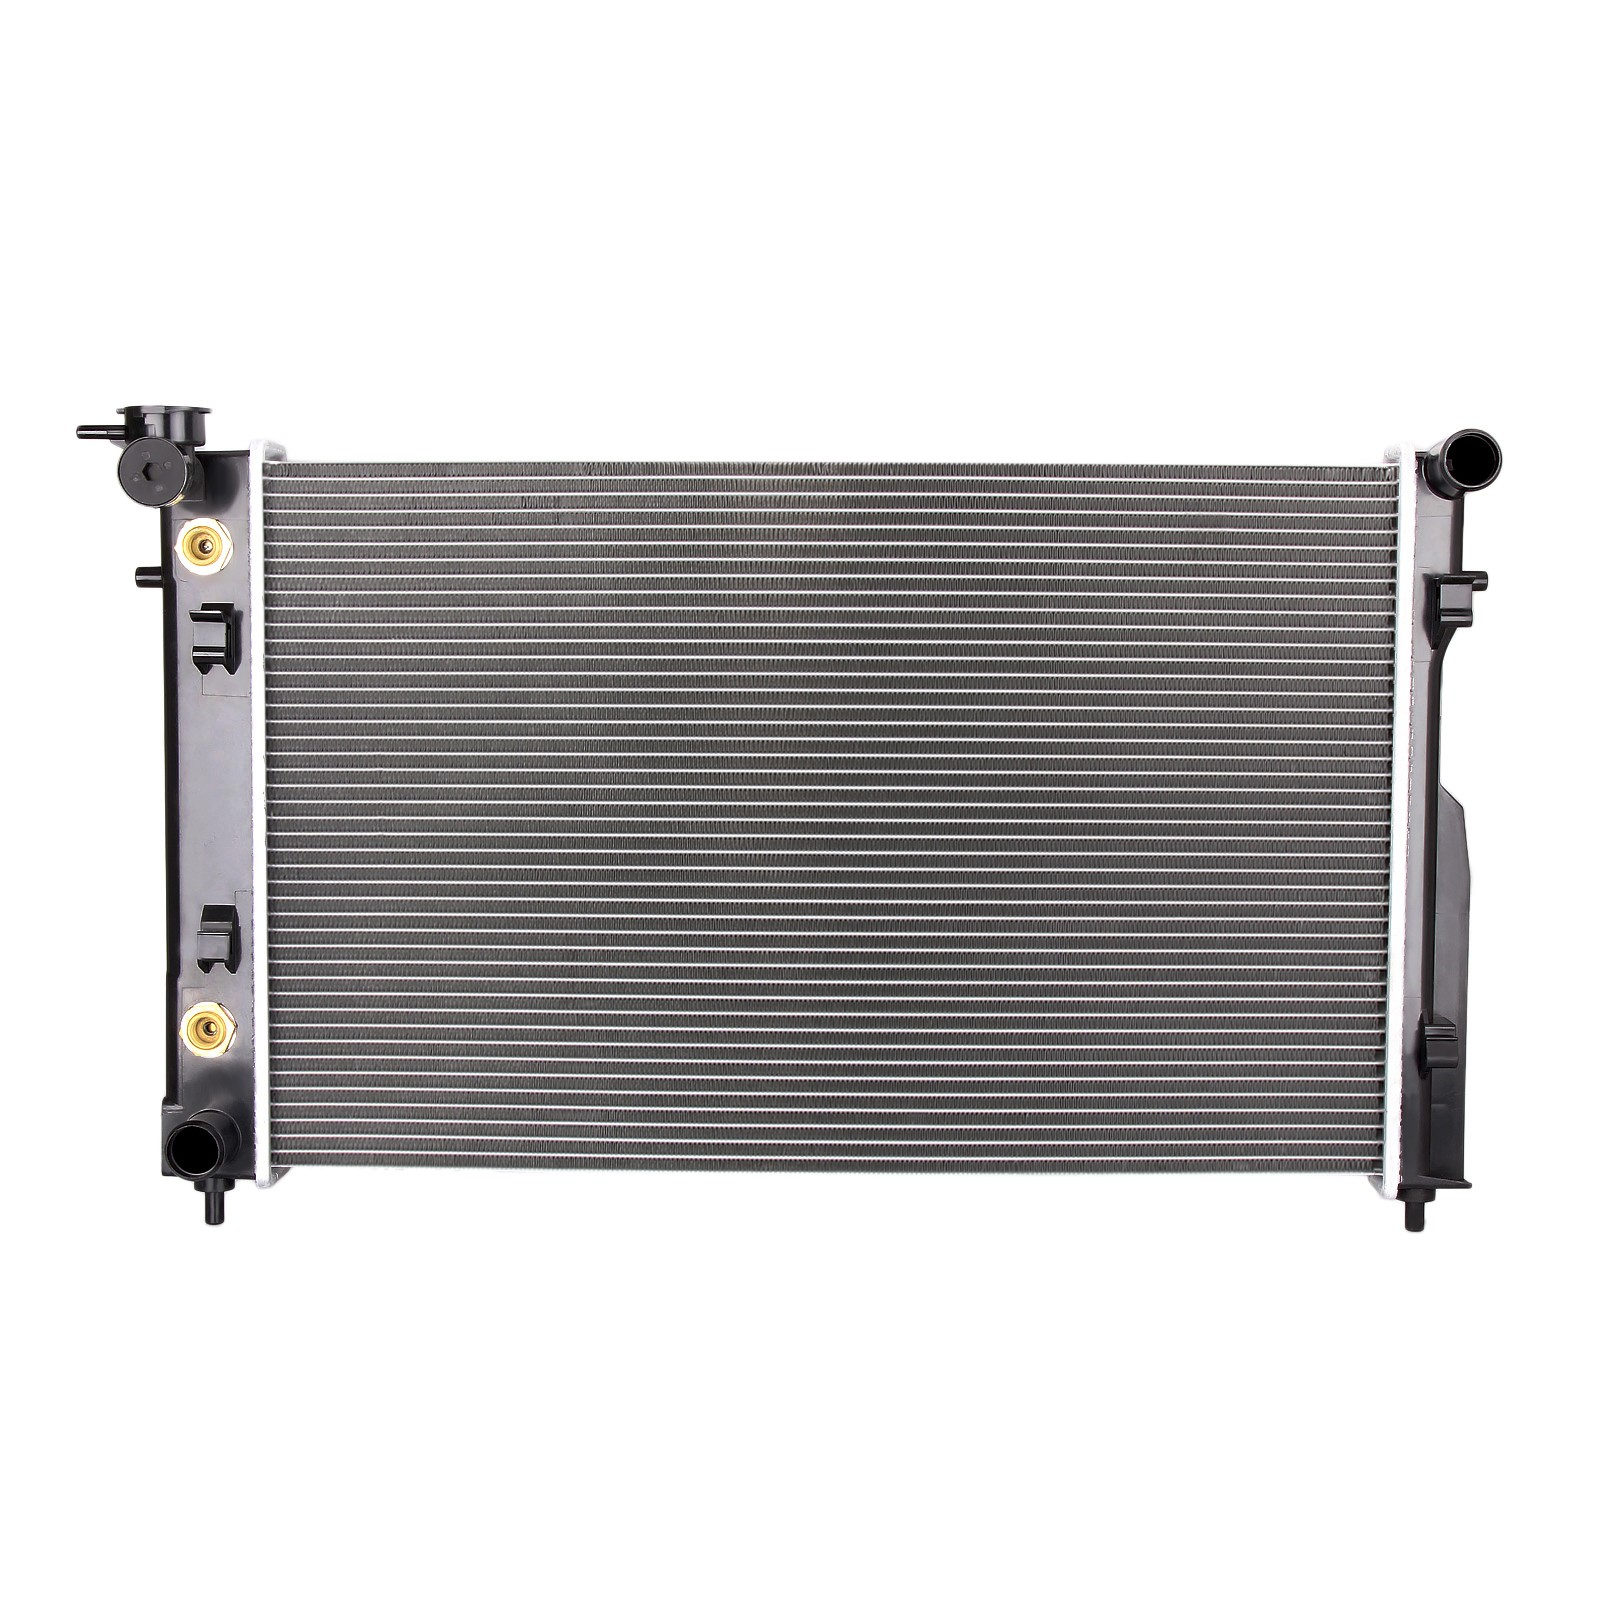 Dromedary-Car Radiator For Holden Vy Commodore V6 38l 2002-2005 Automanual Premium-1